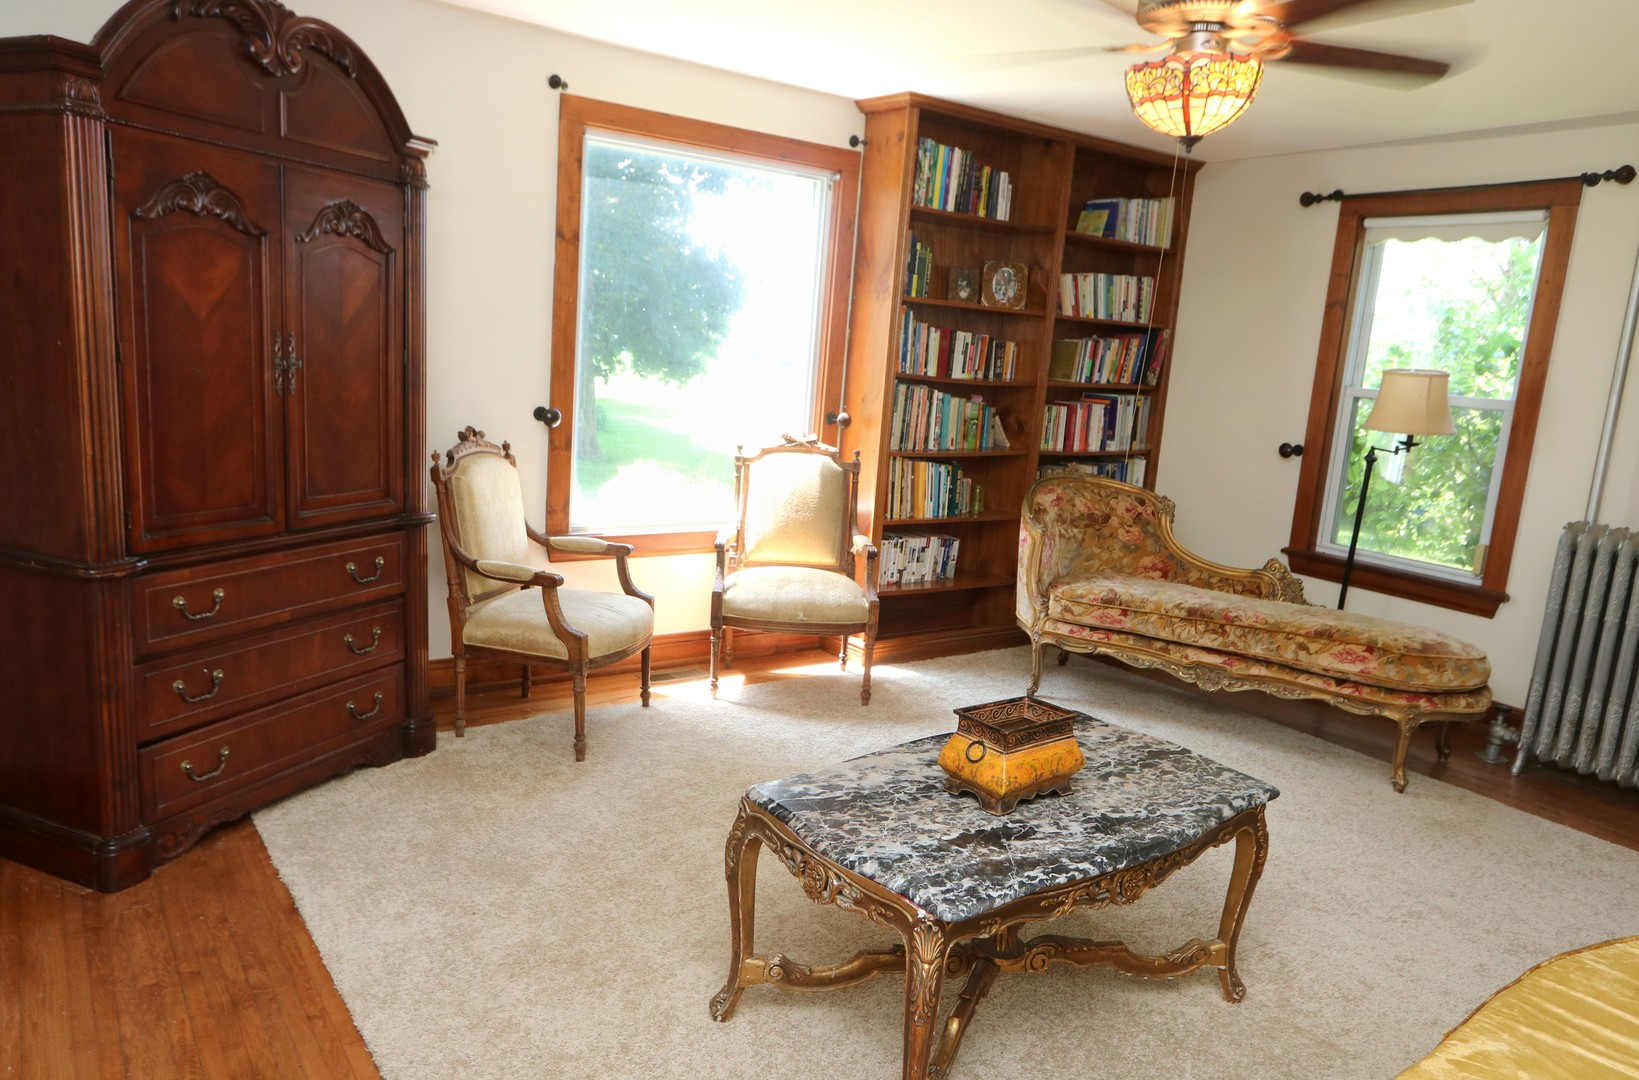 singles in capron Single family home for sale in capron, il for $870,000 with 4 bedrooms and 6 full baths, 2 half baths this 7,999 square foot home was built on a lot size of 11+acres.